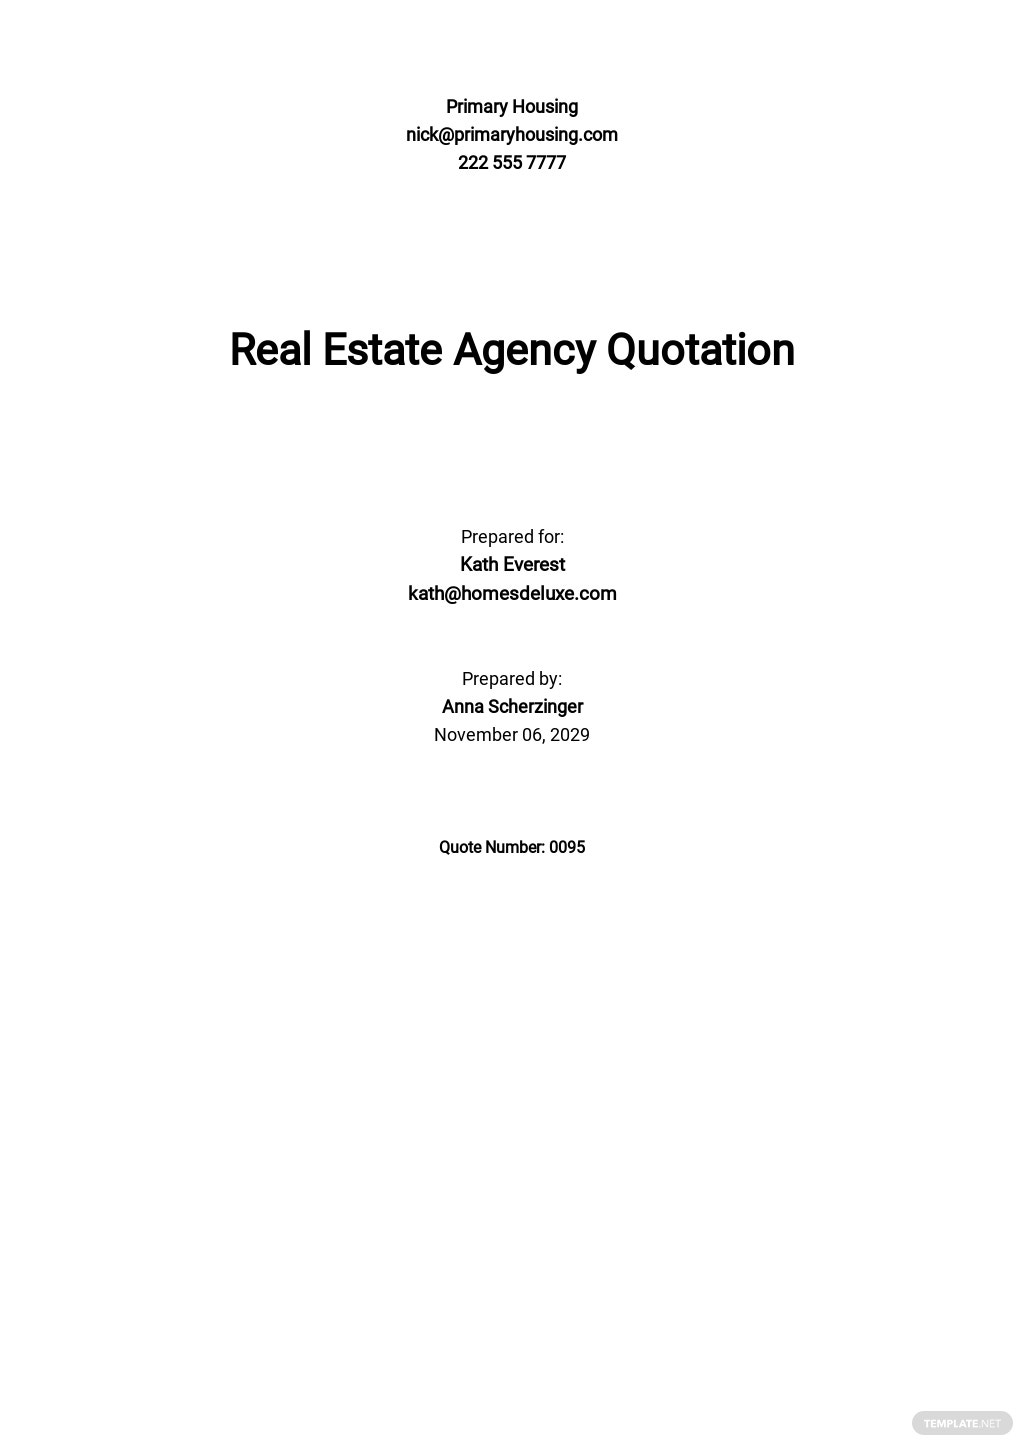 Real Estate Agency Quotation Template [Free PDF] - Google Docs, Google Sheets, Excel, Word